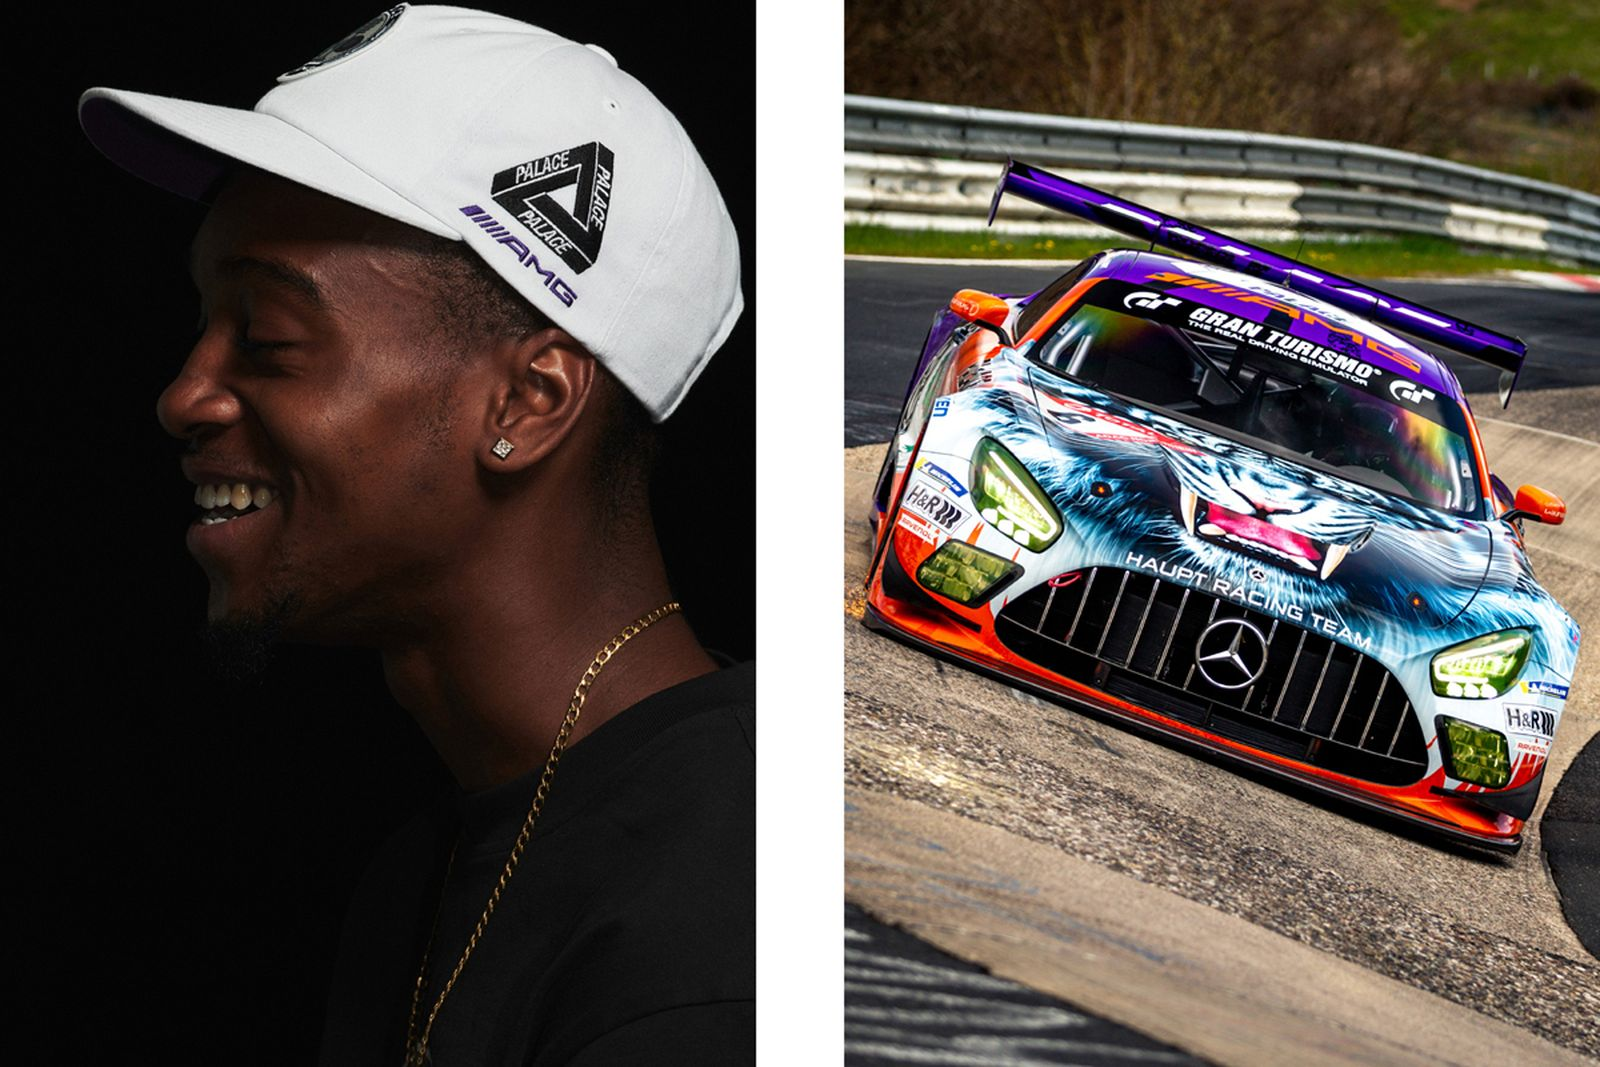 PALACE mercedes AMG gt3 collab (6)